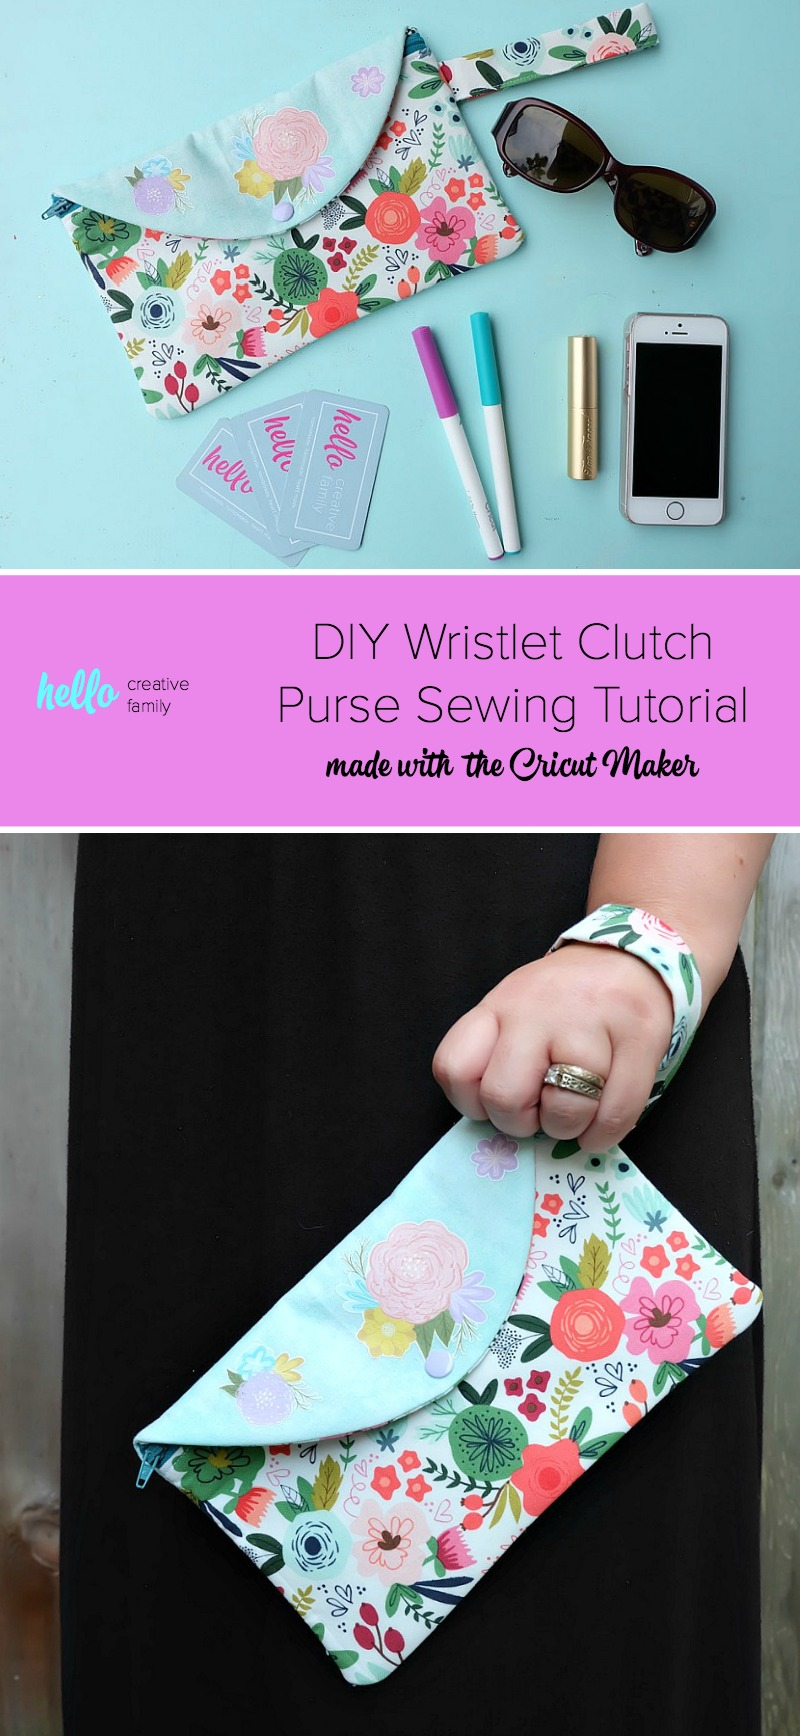 Learn how to sew an adorable DIY Wristlet Clutch Purse with this fabulous sewing tutorial with step by step photos and instructions! Every girl needs the perfect clutch, so why not make one! Fit all of your essentials into this DIY Wristlet Clutch Purse! Comes with a free cut file for making this craft project on the Cricut Maker. Make extras for handmade gift ideas for the women in your life! #Cricut #CricutMade #sewing #crafts